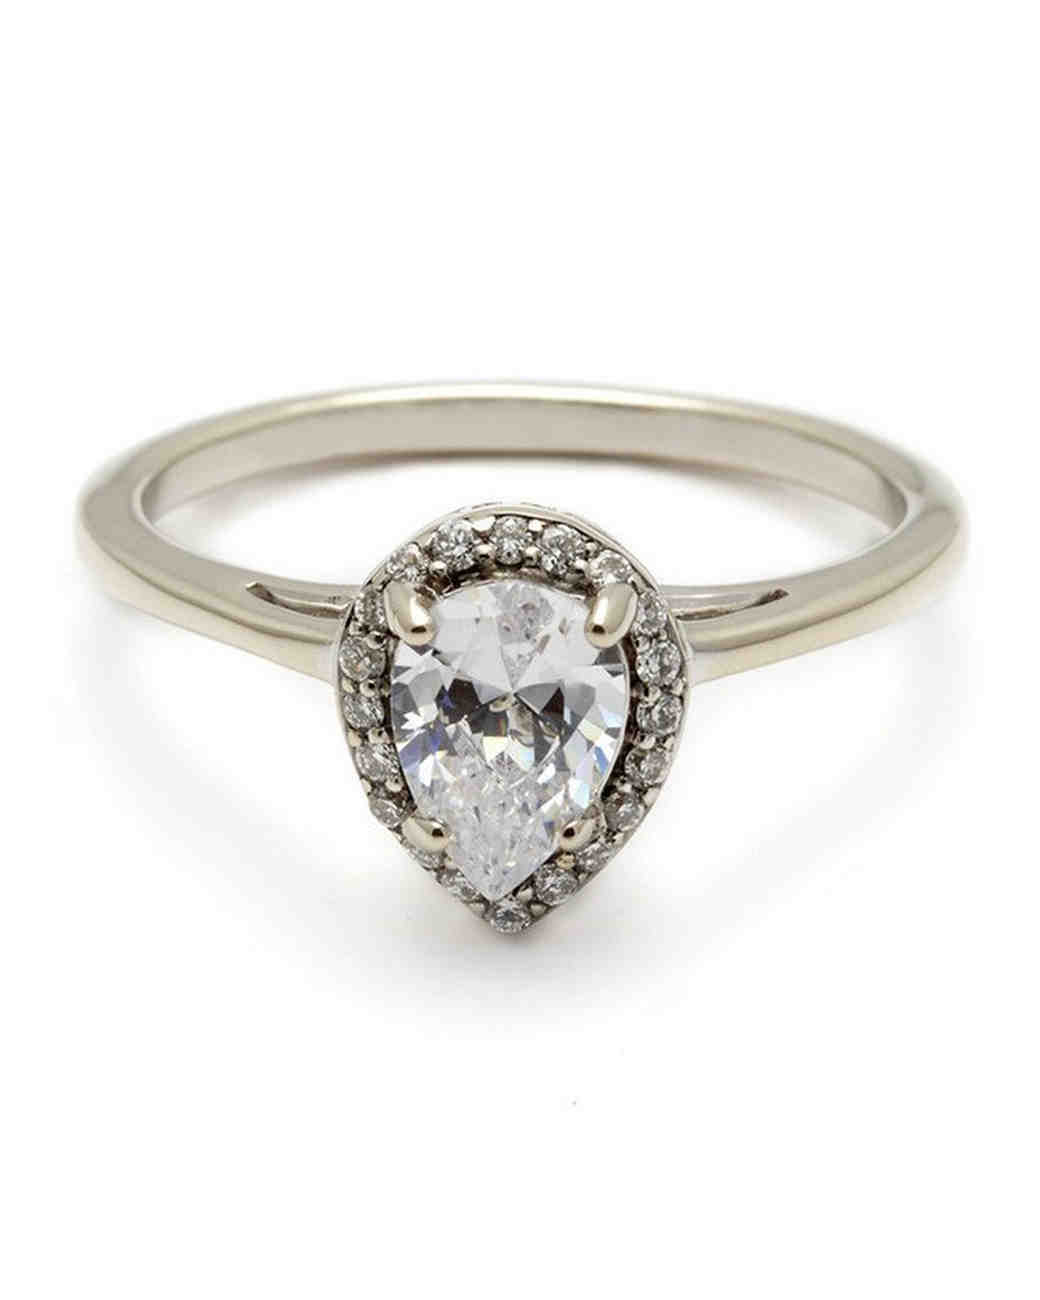 How To Wear A Pear Shaped Diamond Ring